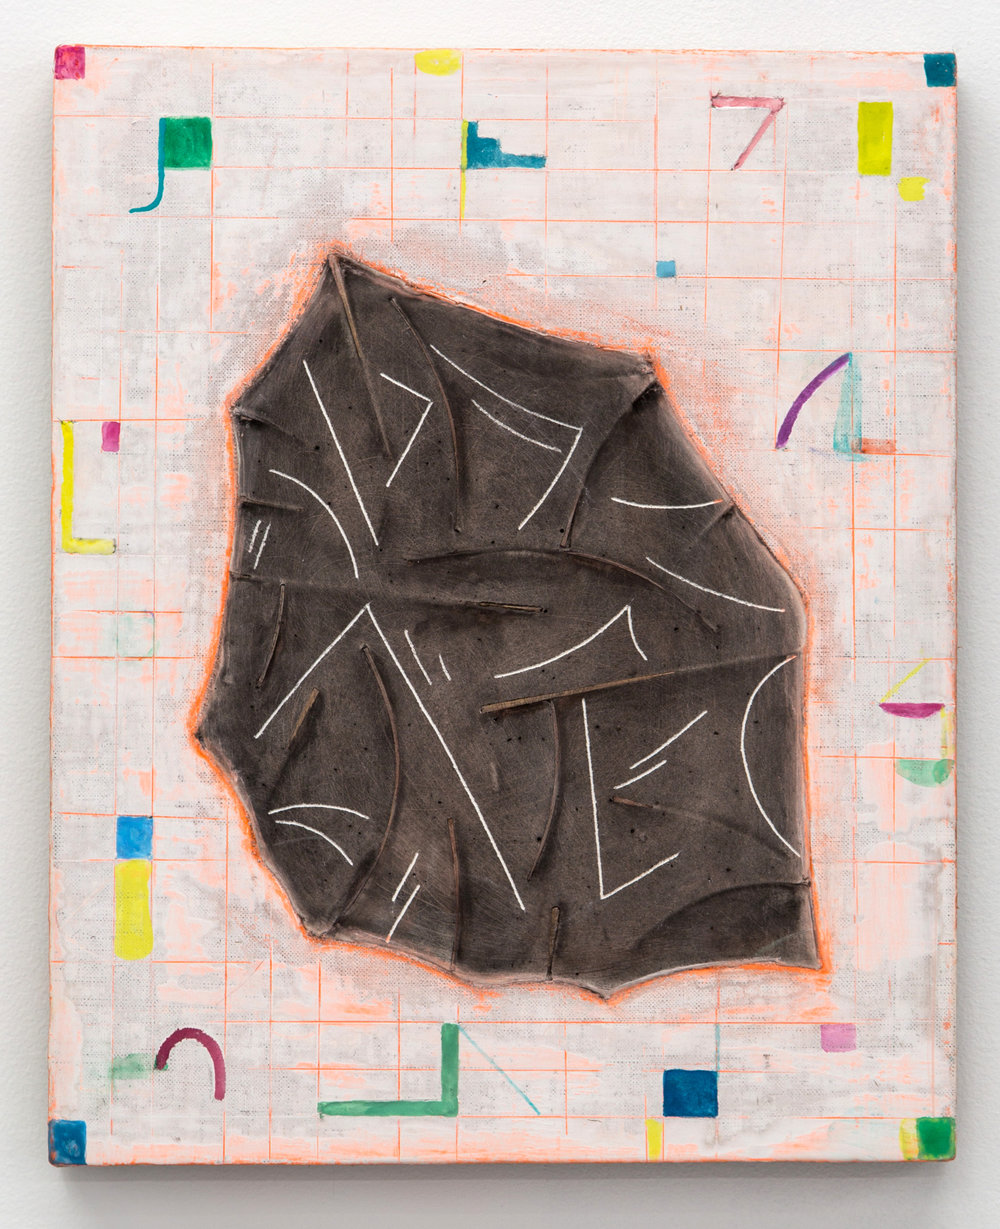 Bats and Plots , 2016 watercolor, acrylic, plaster and bamboo on linen wrapped panel 16 x 13 in